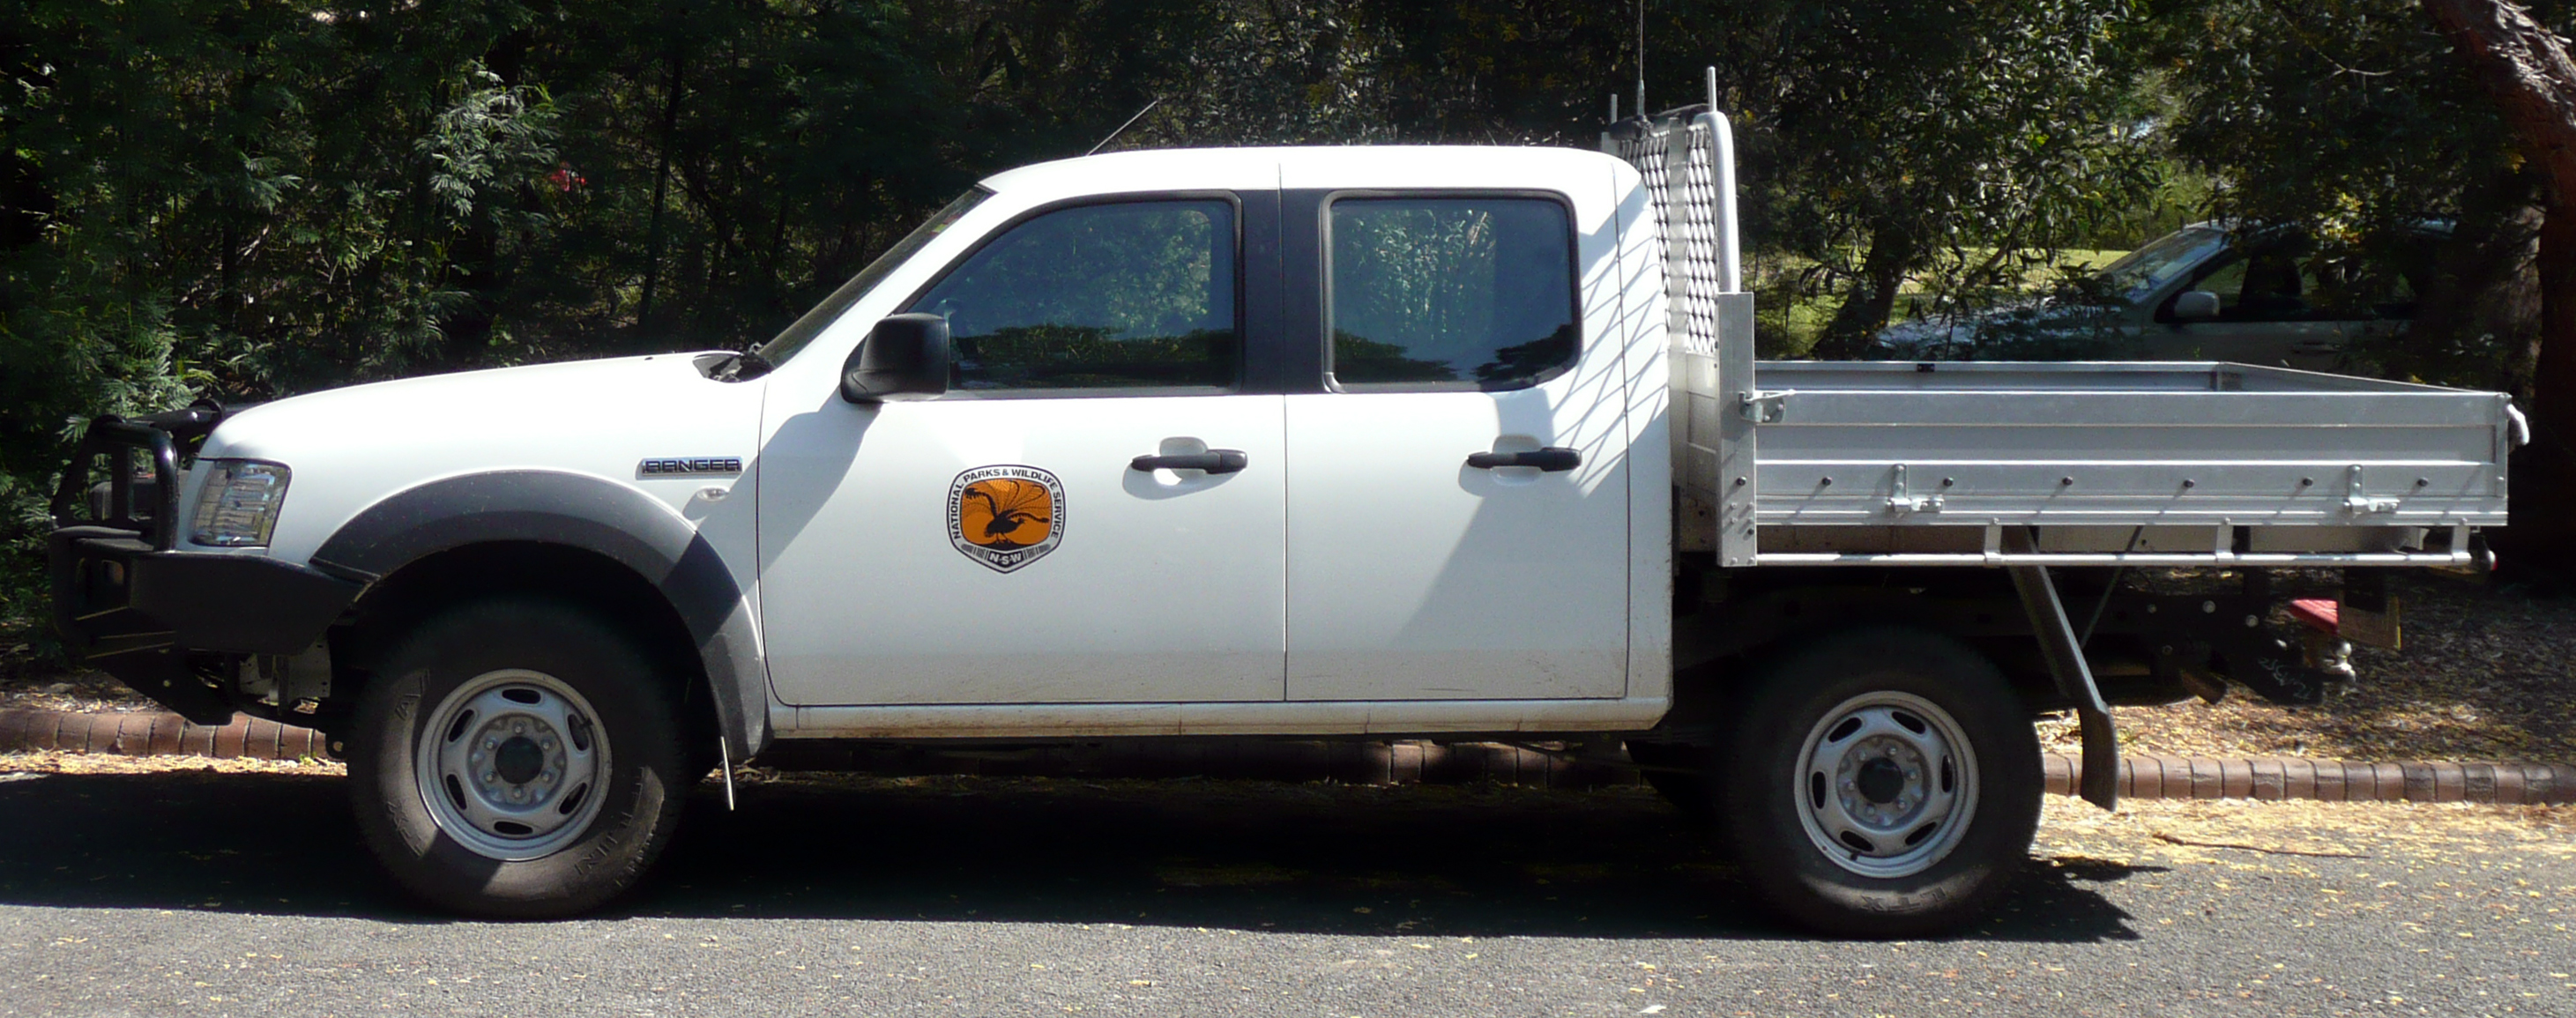 File2006 2008 ford ranger pj xl 4 door cab chassis 02 jpg